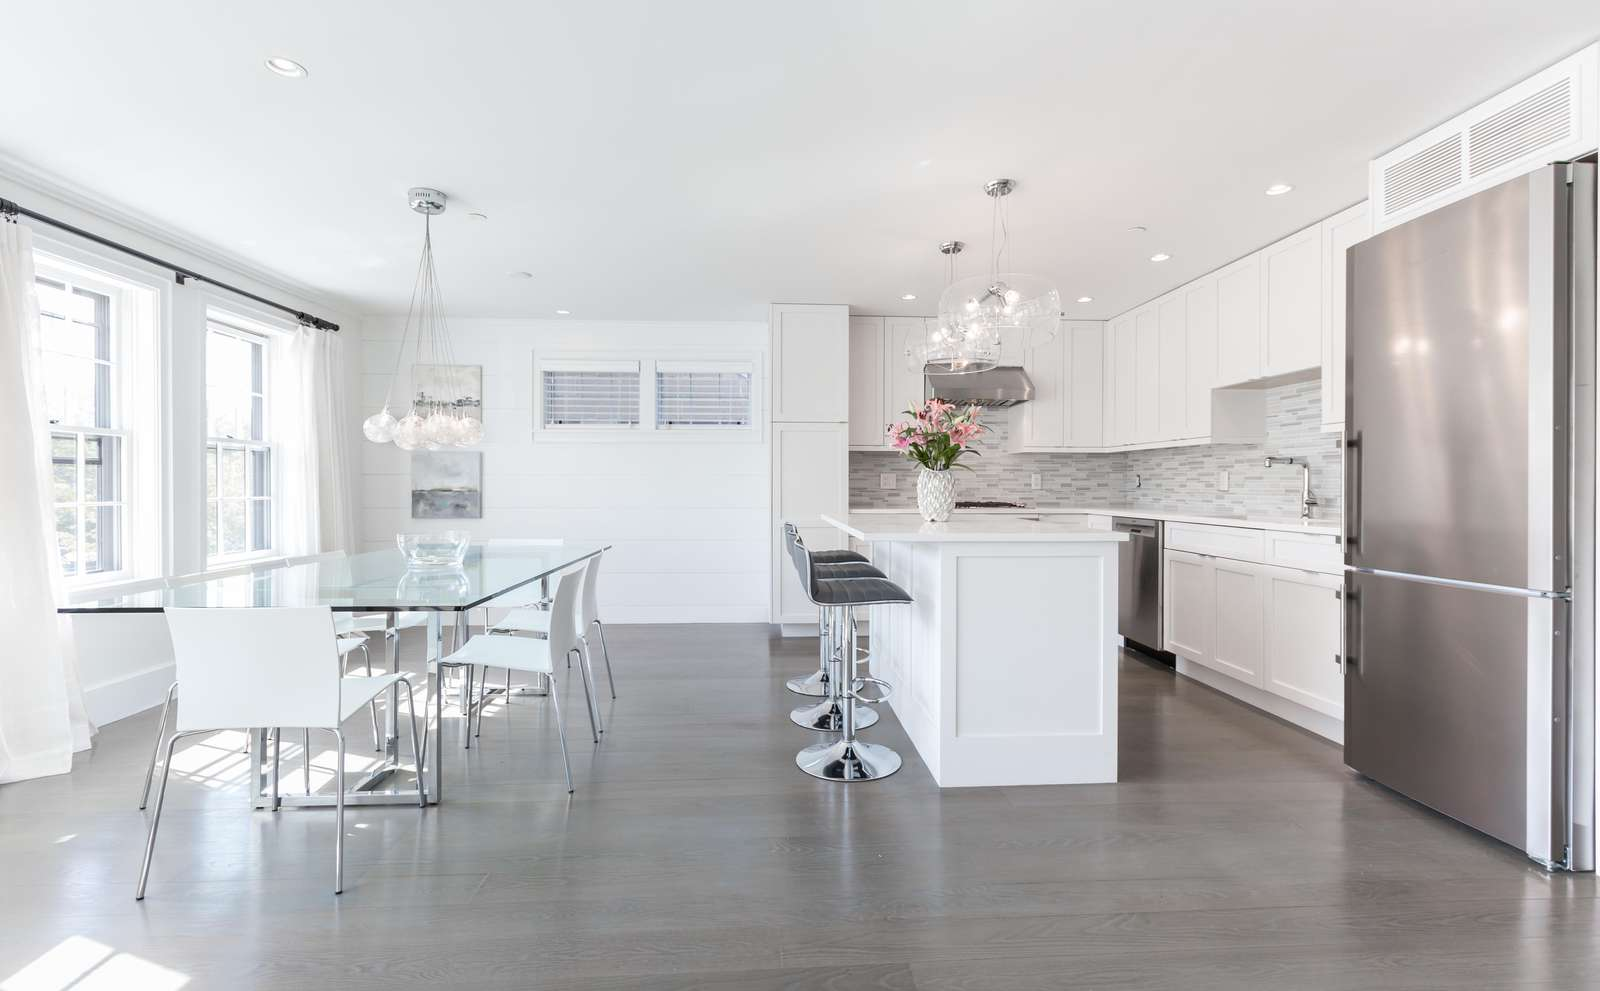 Open kitchen and dining room - perfect for entertaining